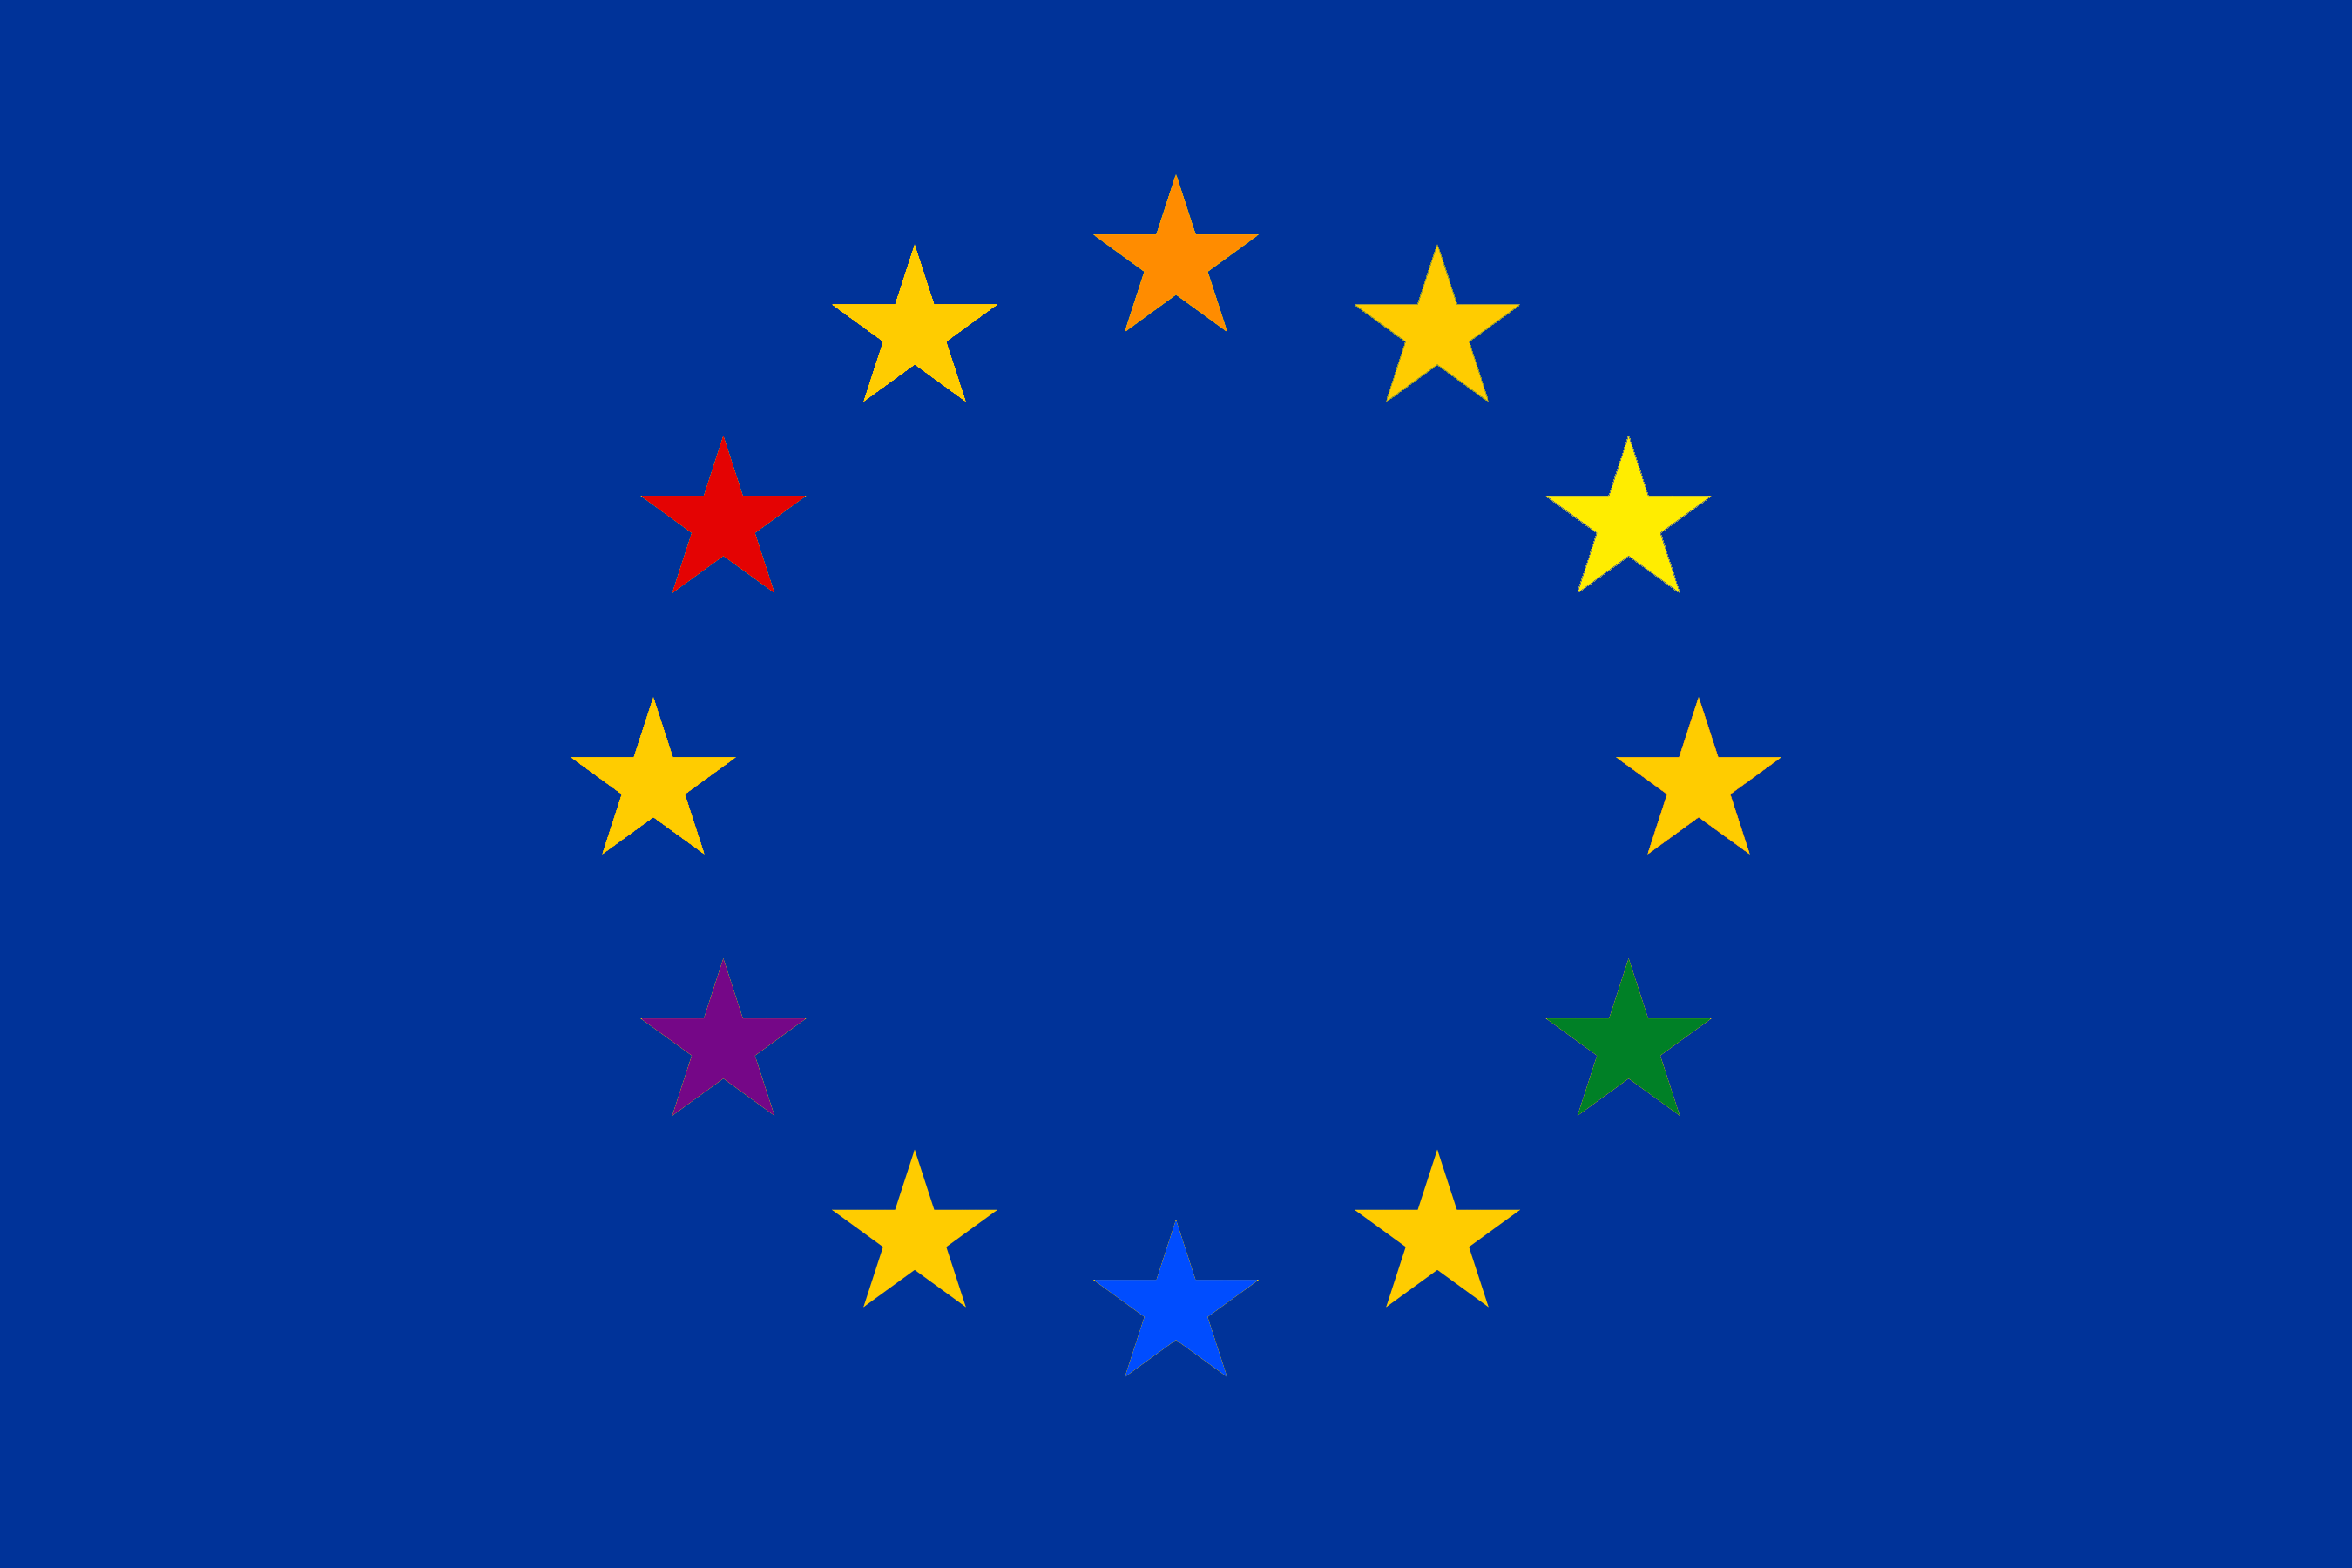 //www.nxf.ie/wp-content/uploads/2019/12/European_Gay_Flag_Round-1.png